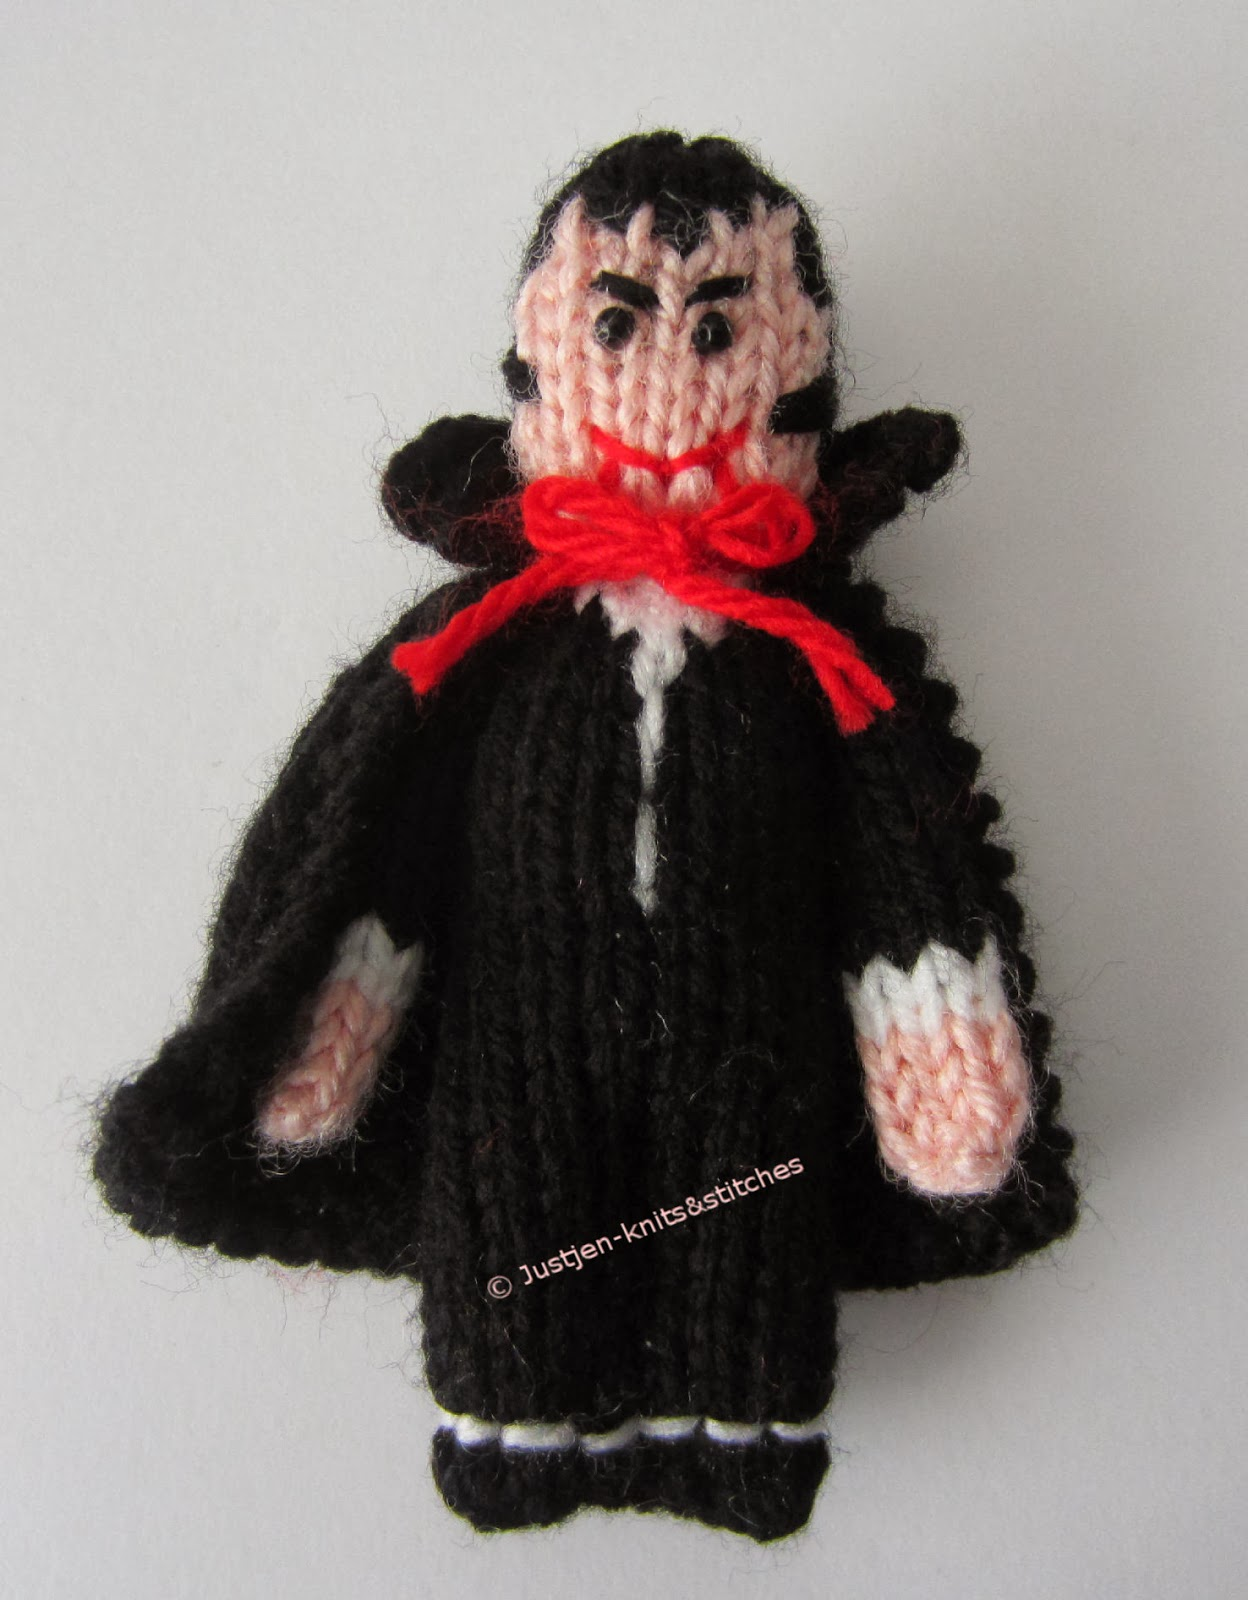 Halloween Knitting Patterns : Justjen-knits&stitches: The Little Vampire